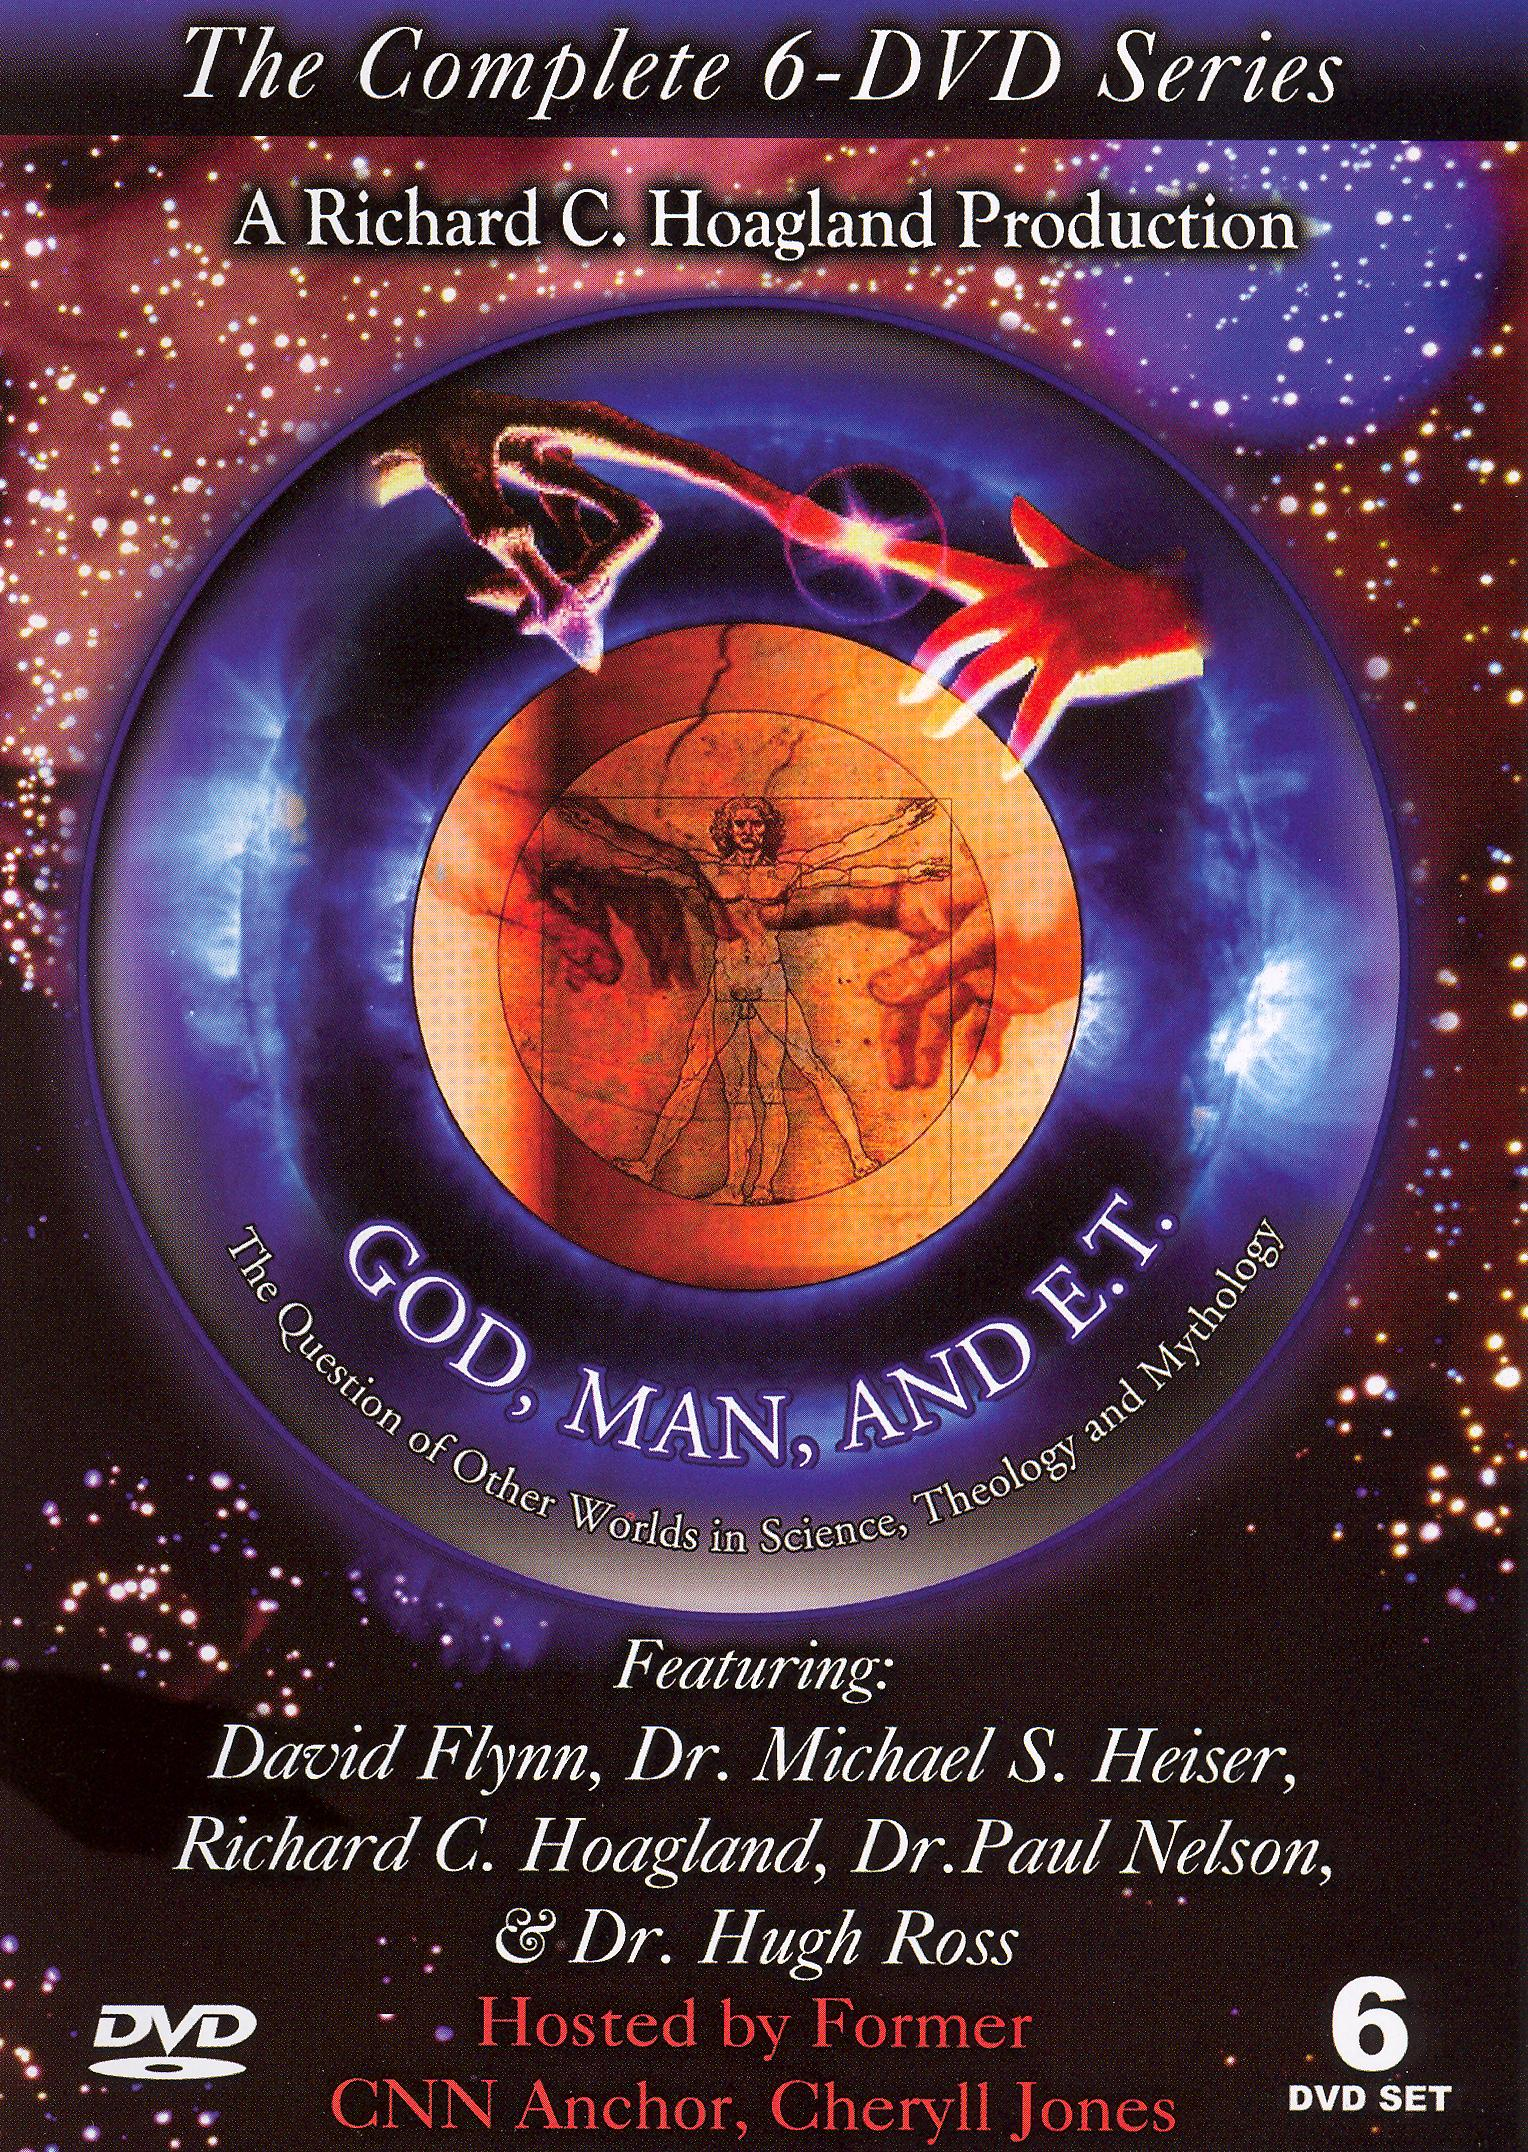 God, Man and ET: The Search of Other Worlds in Science